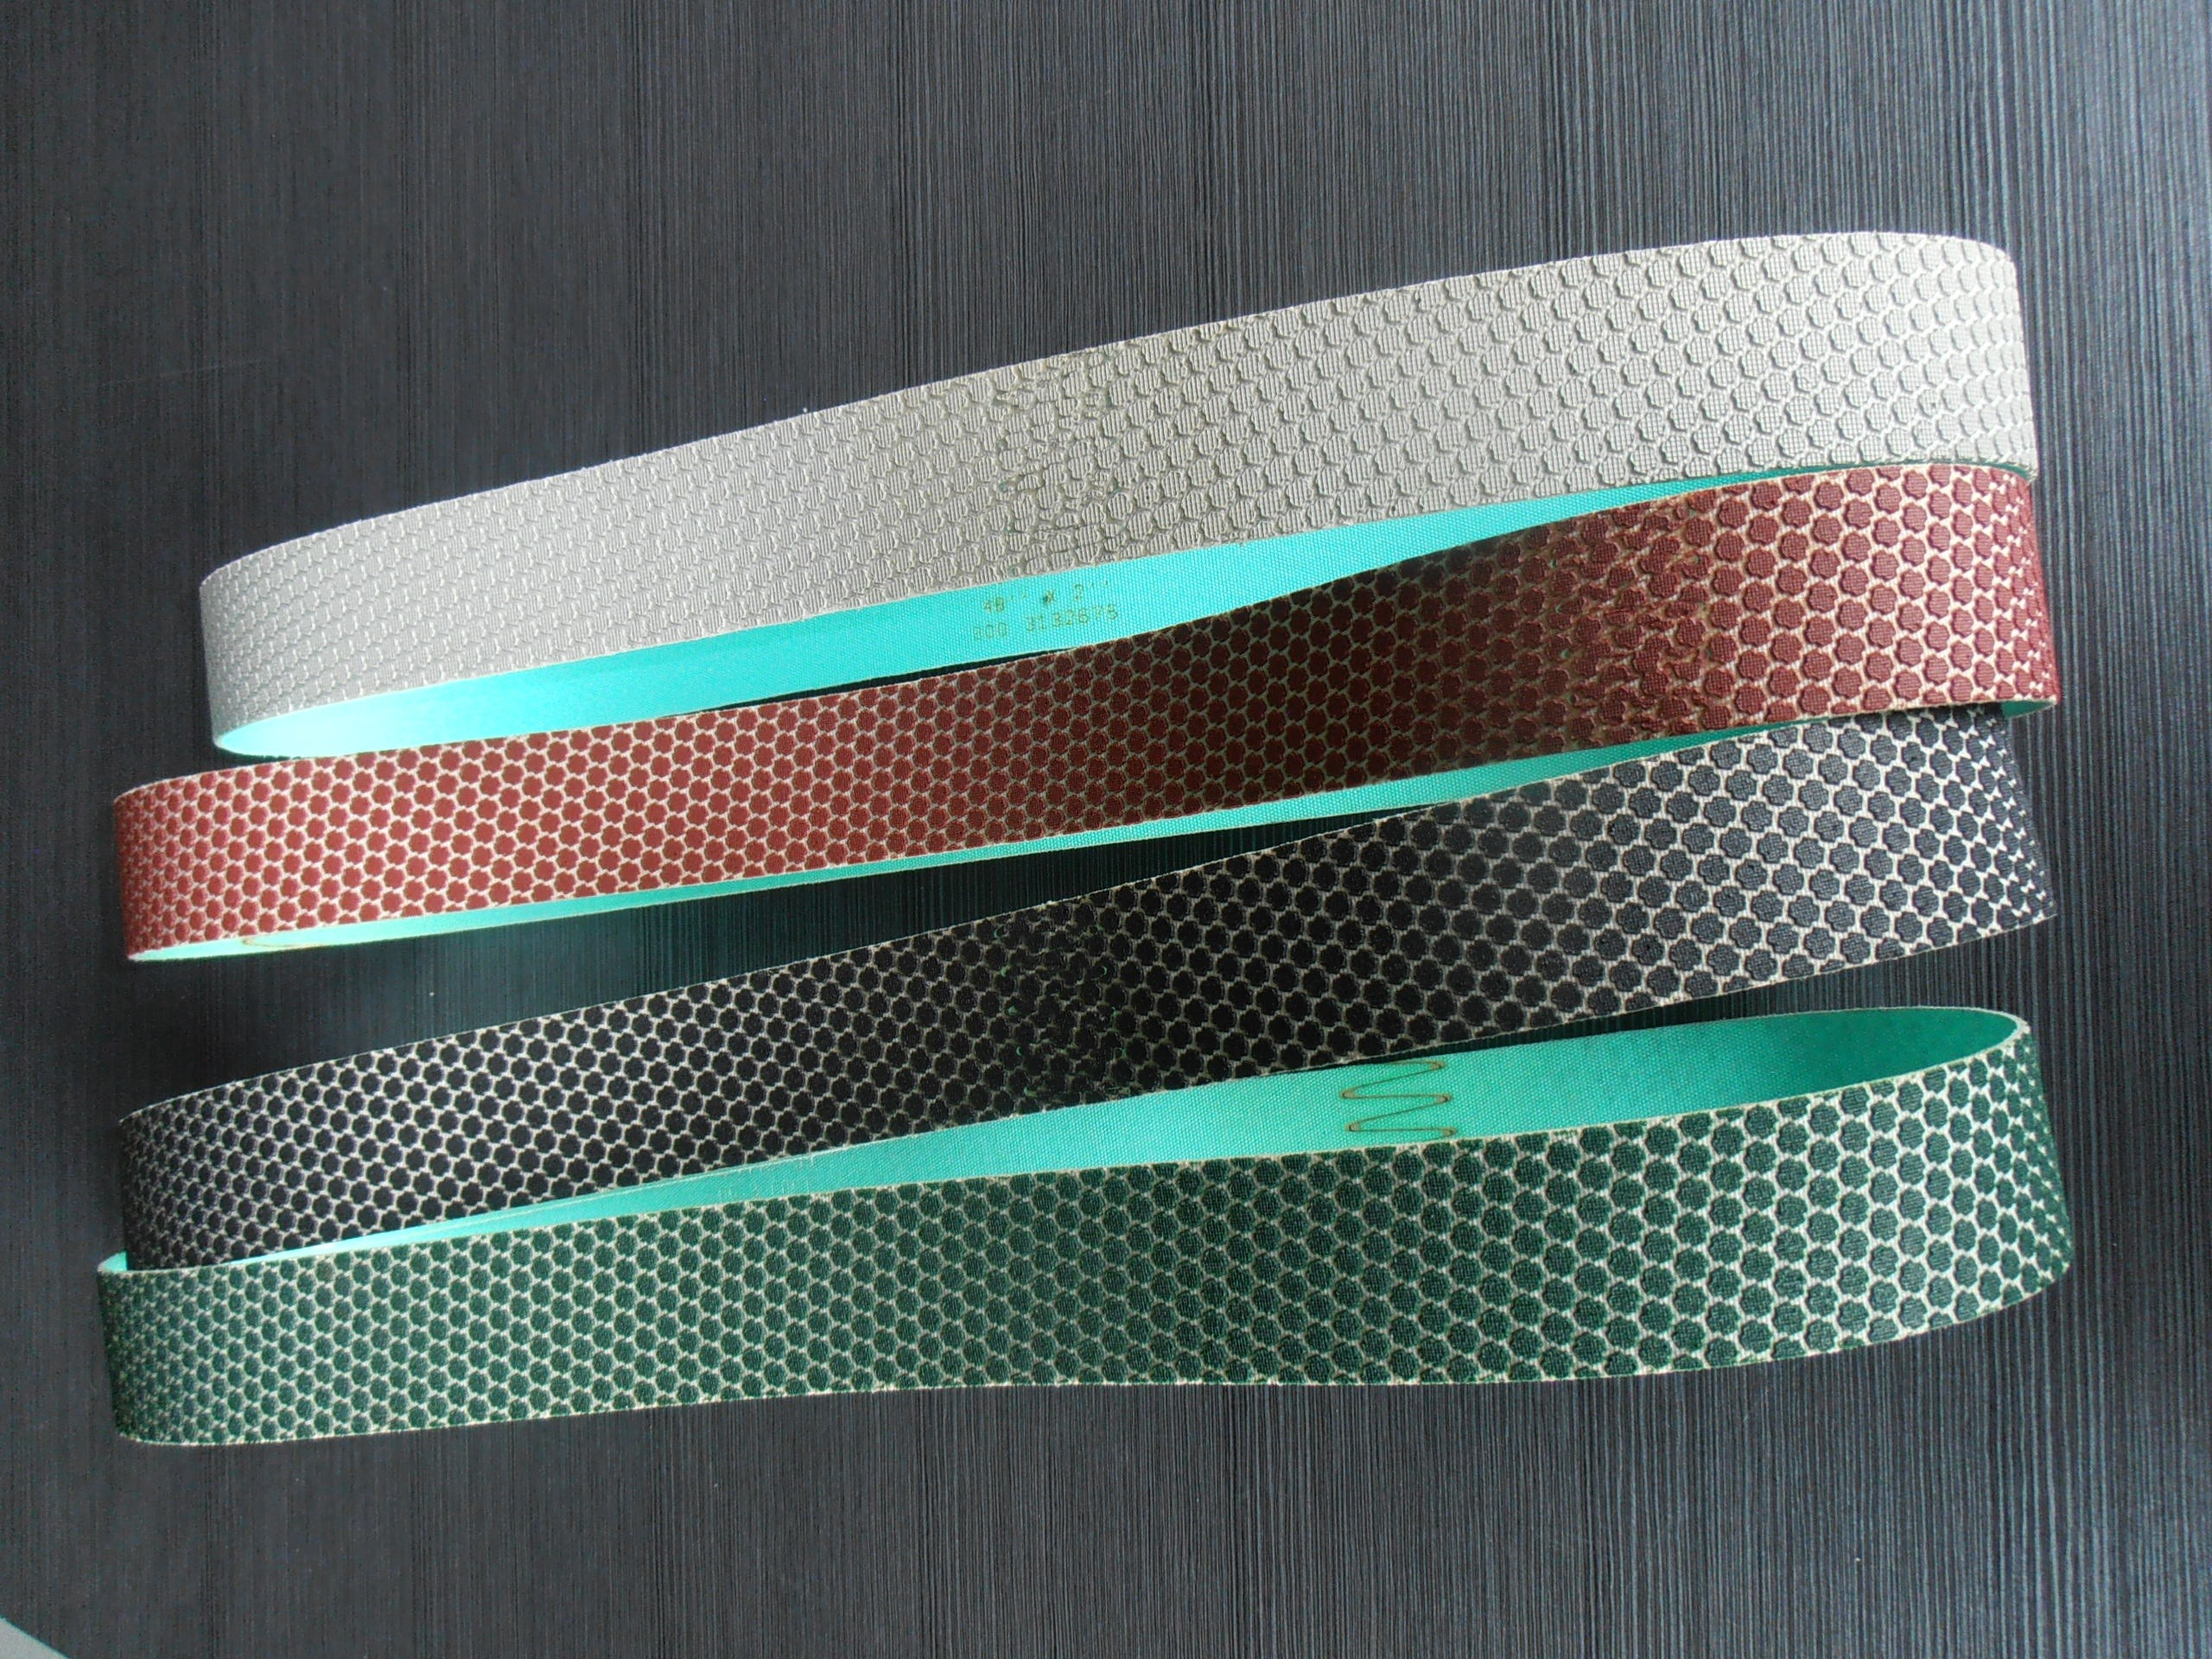 Diamond Belts For Grinding And Polishing Extremely Hard